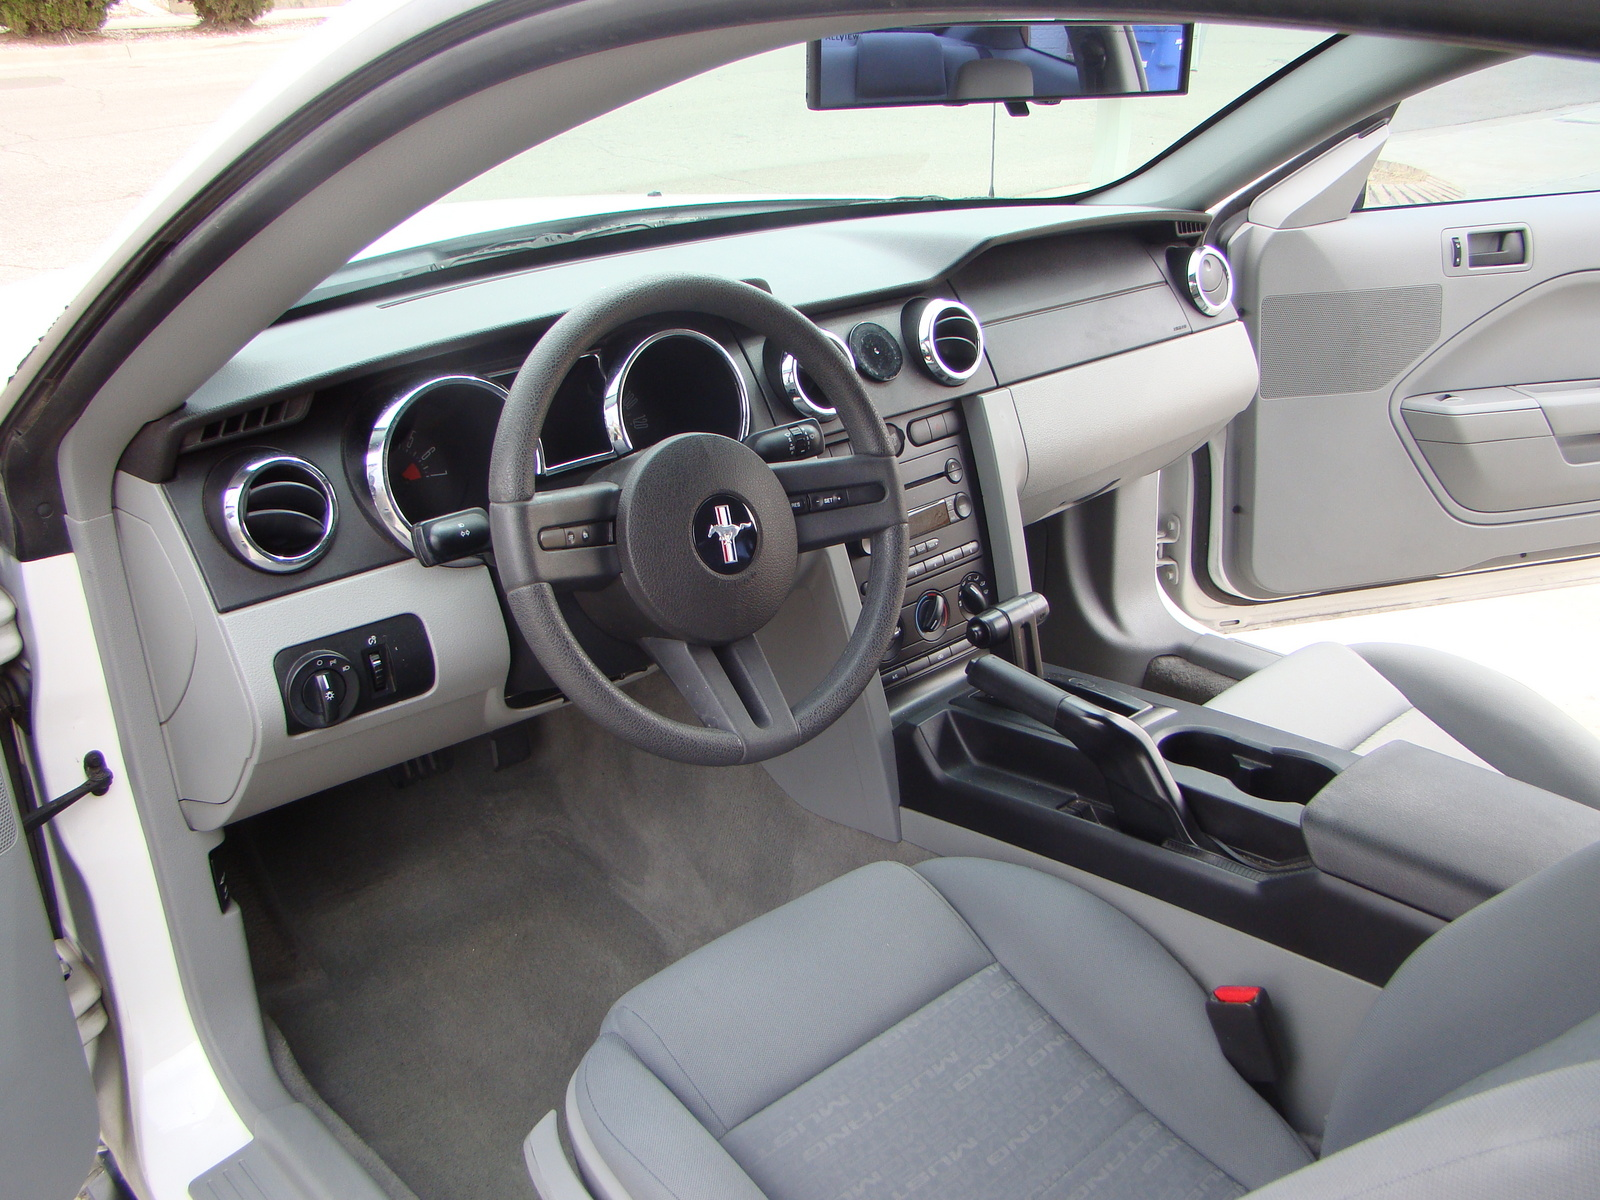 2005 Ford Mustang Interior Pictures Cargurus